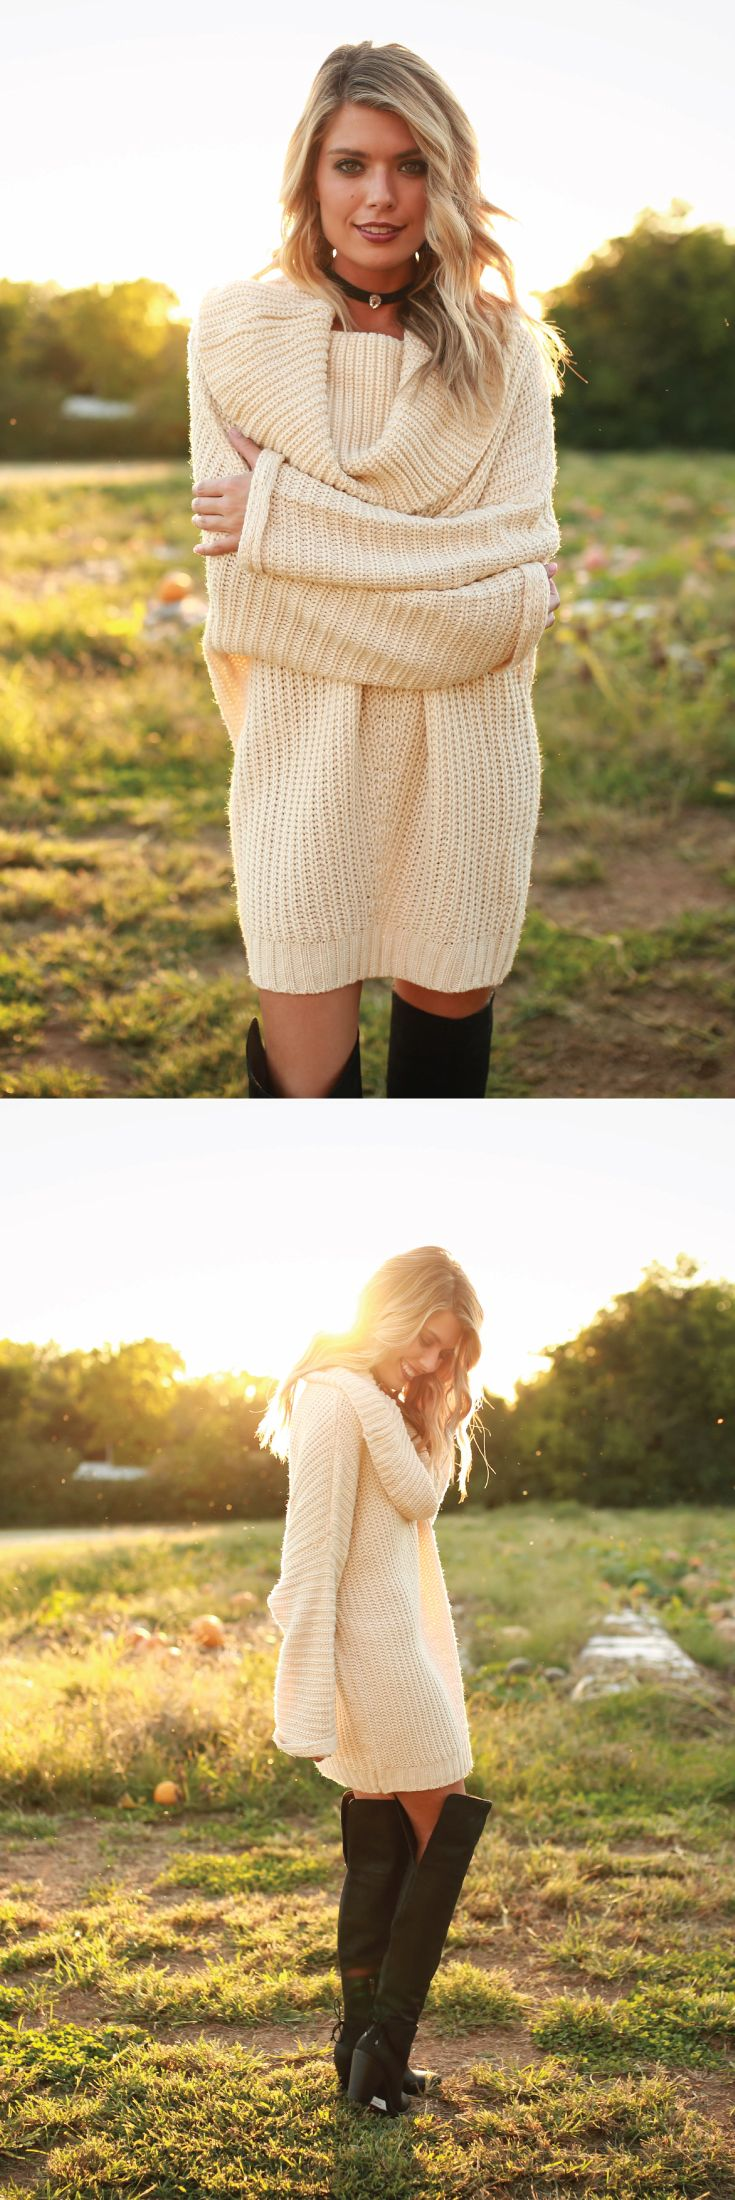 Bundle up, babe! This perfect knit ivory sweater will keep you warm & fashionable all fall long!